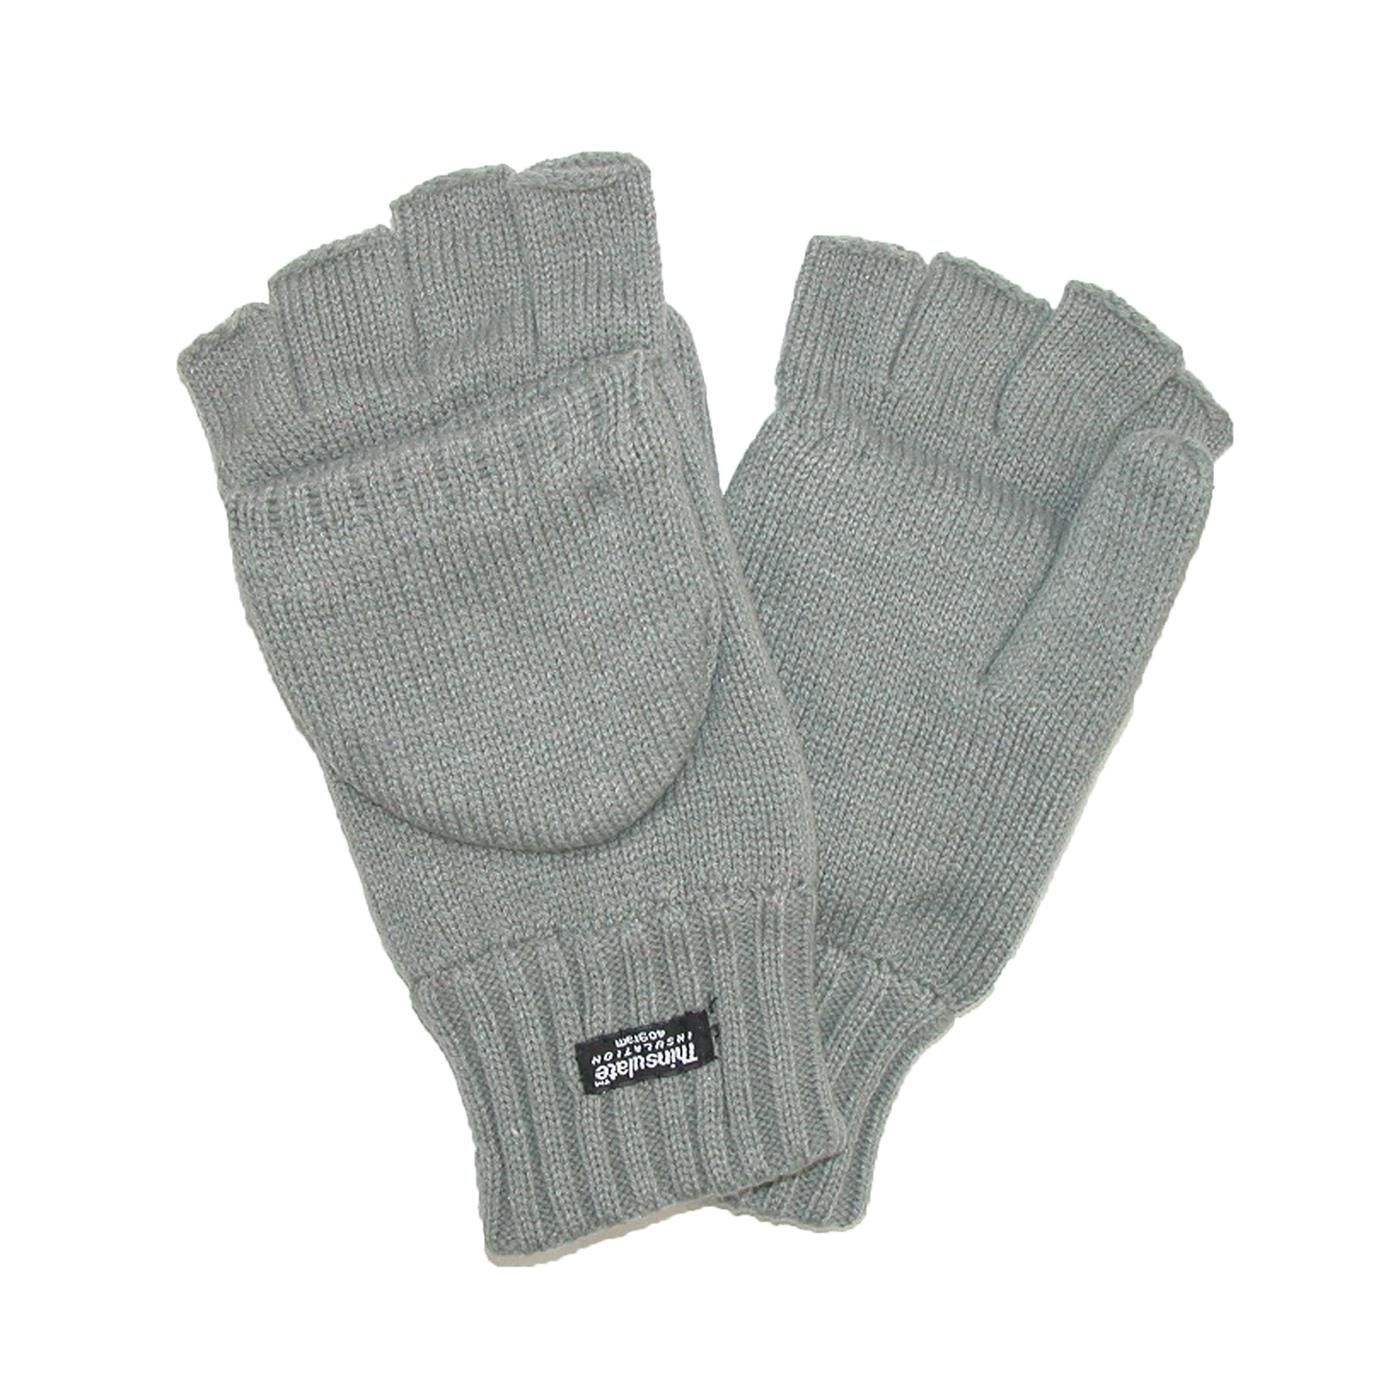 Mens fleece gloves xxl - Warm Knit Gloves Are Lined With Soft Fleece And Thinsulate Insulation For Warmth Without The Bulk